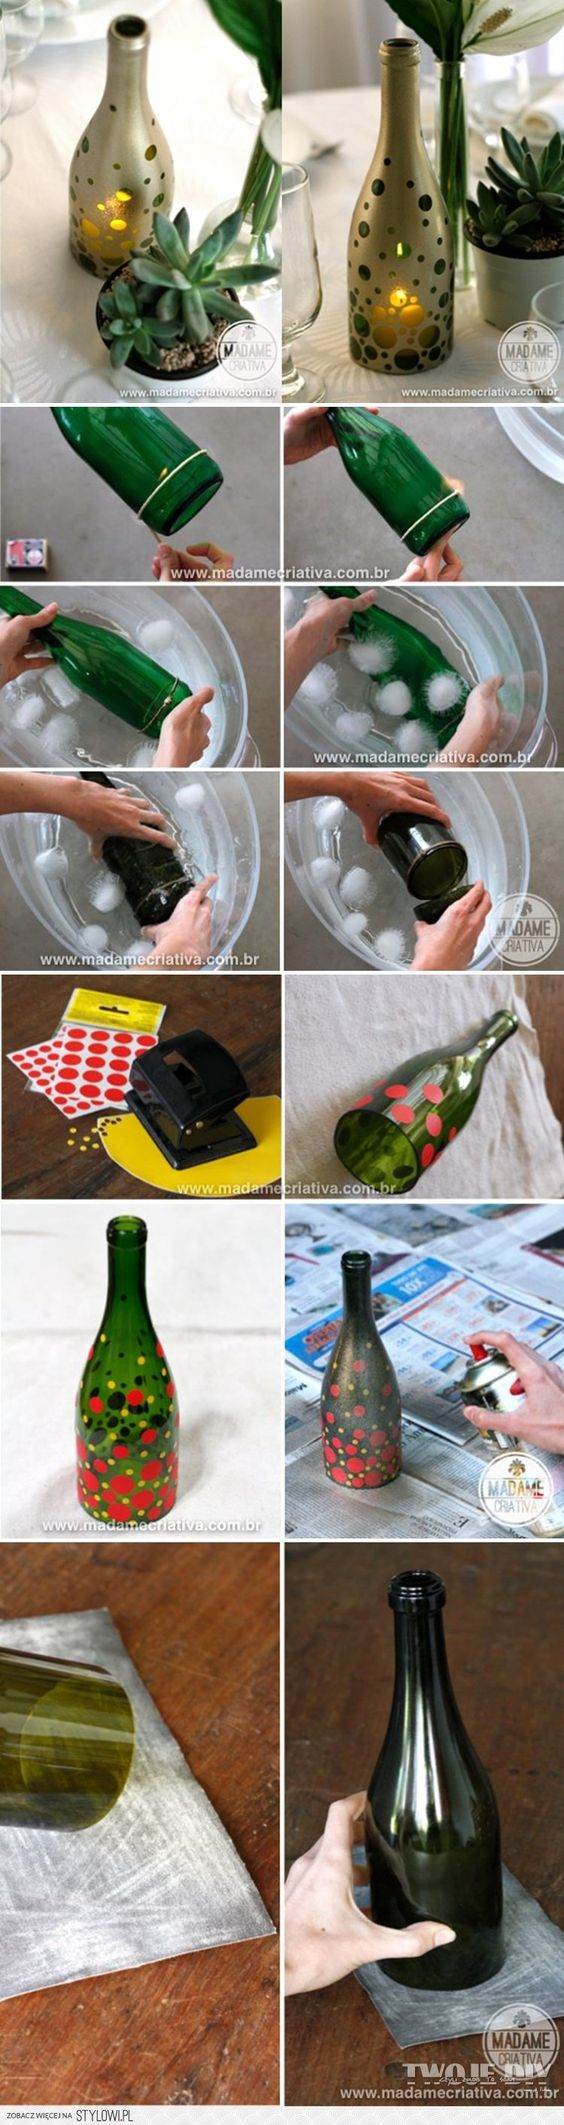 Wine bottle: